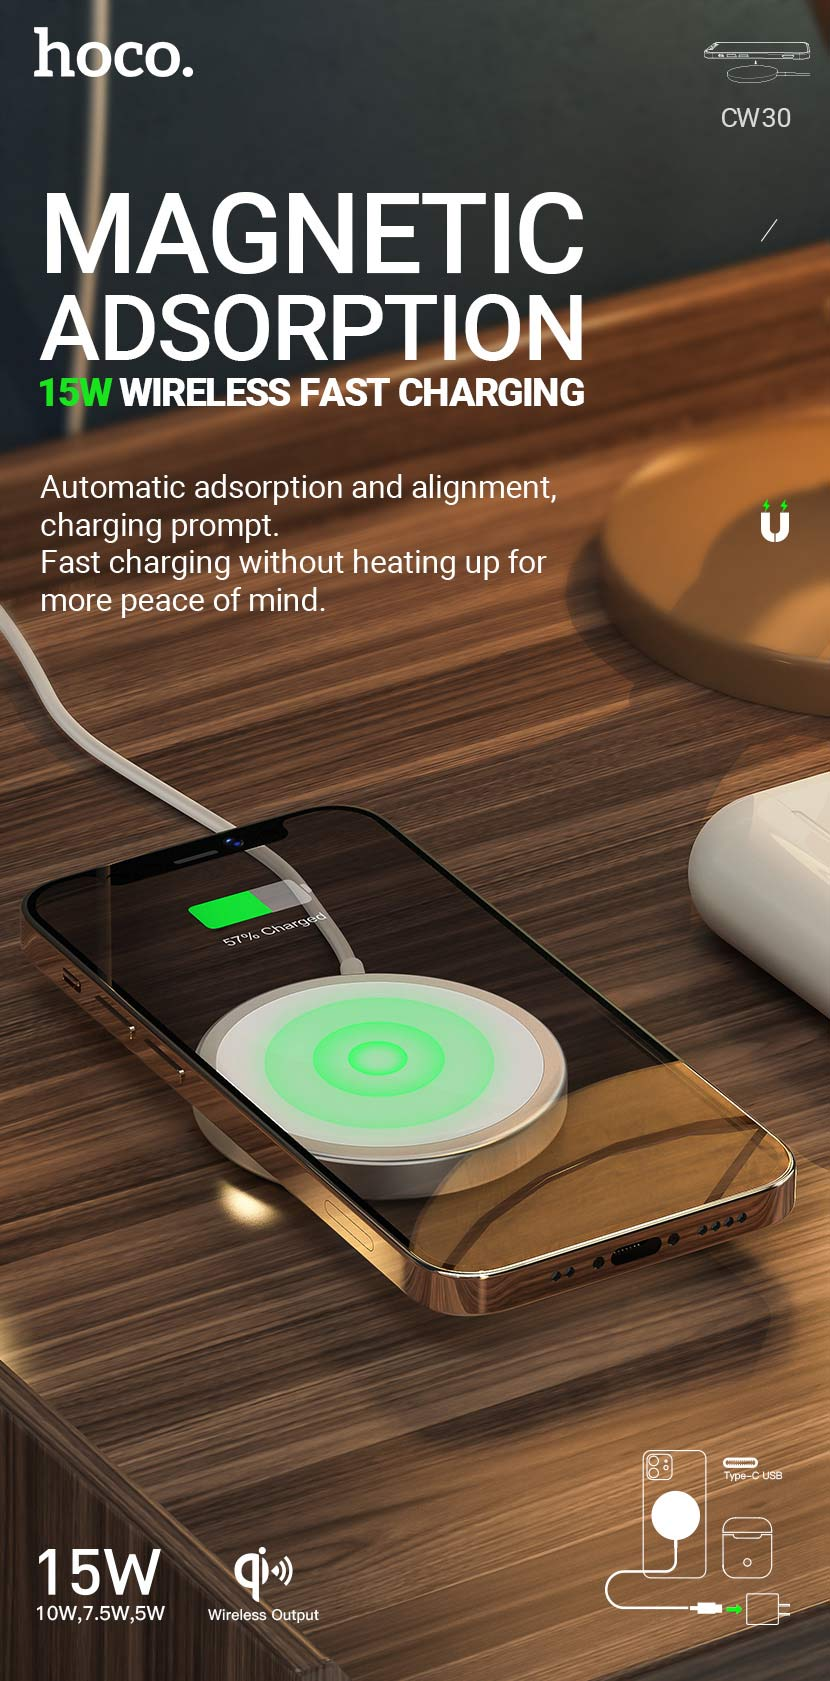 hoco news cw30 original series magnetic wireless fast charger en